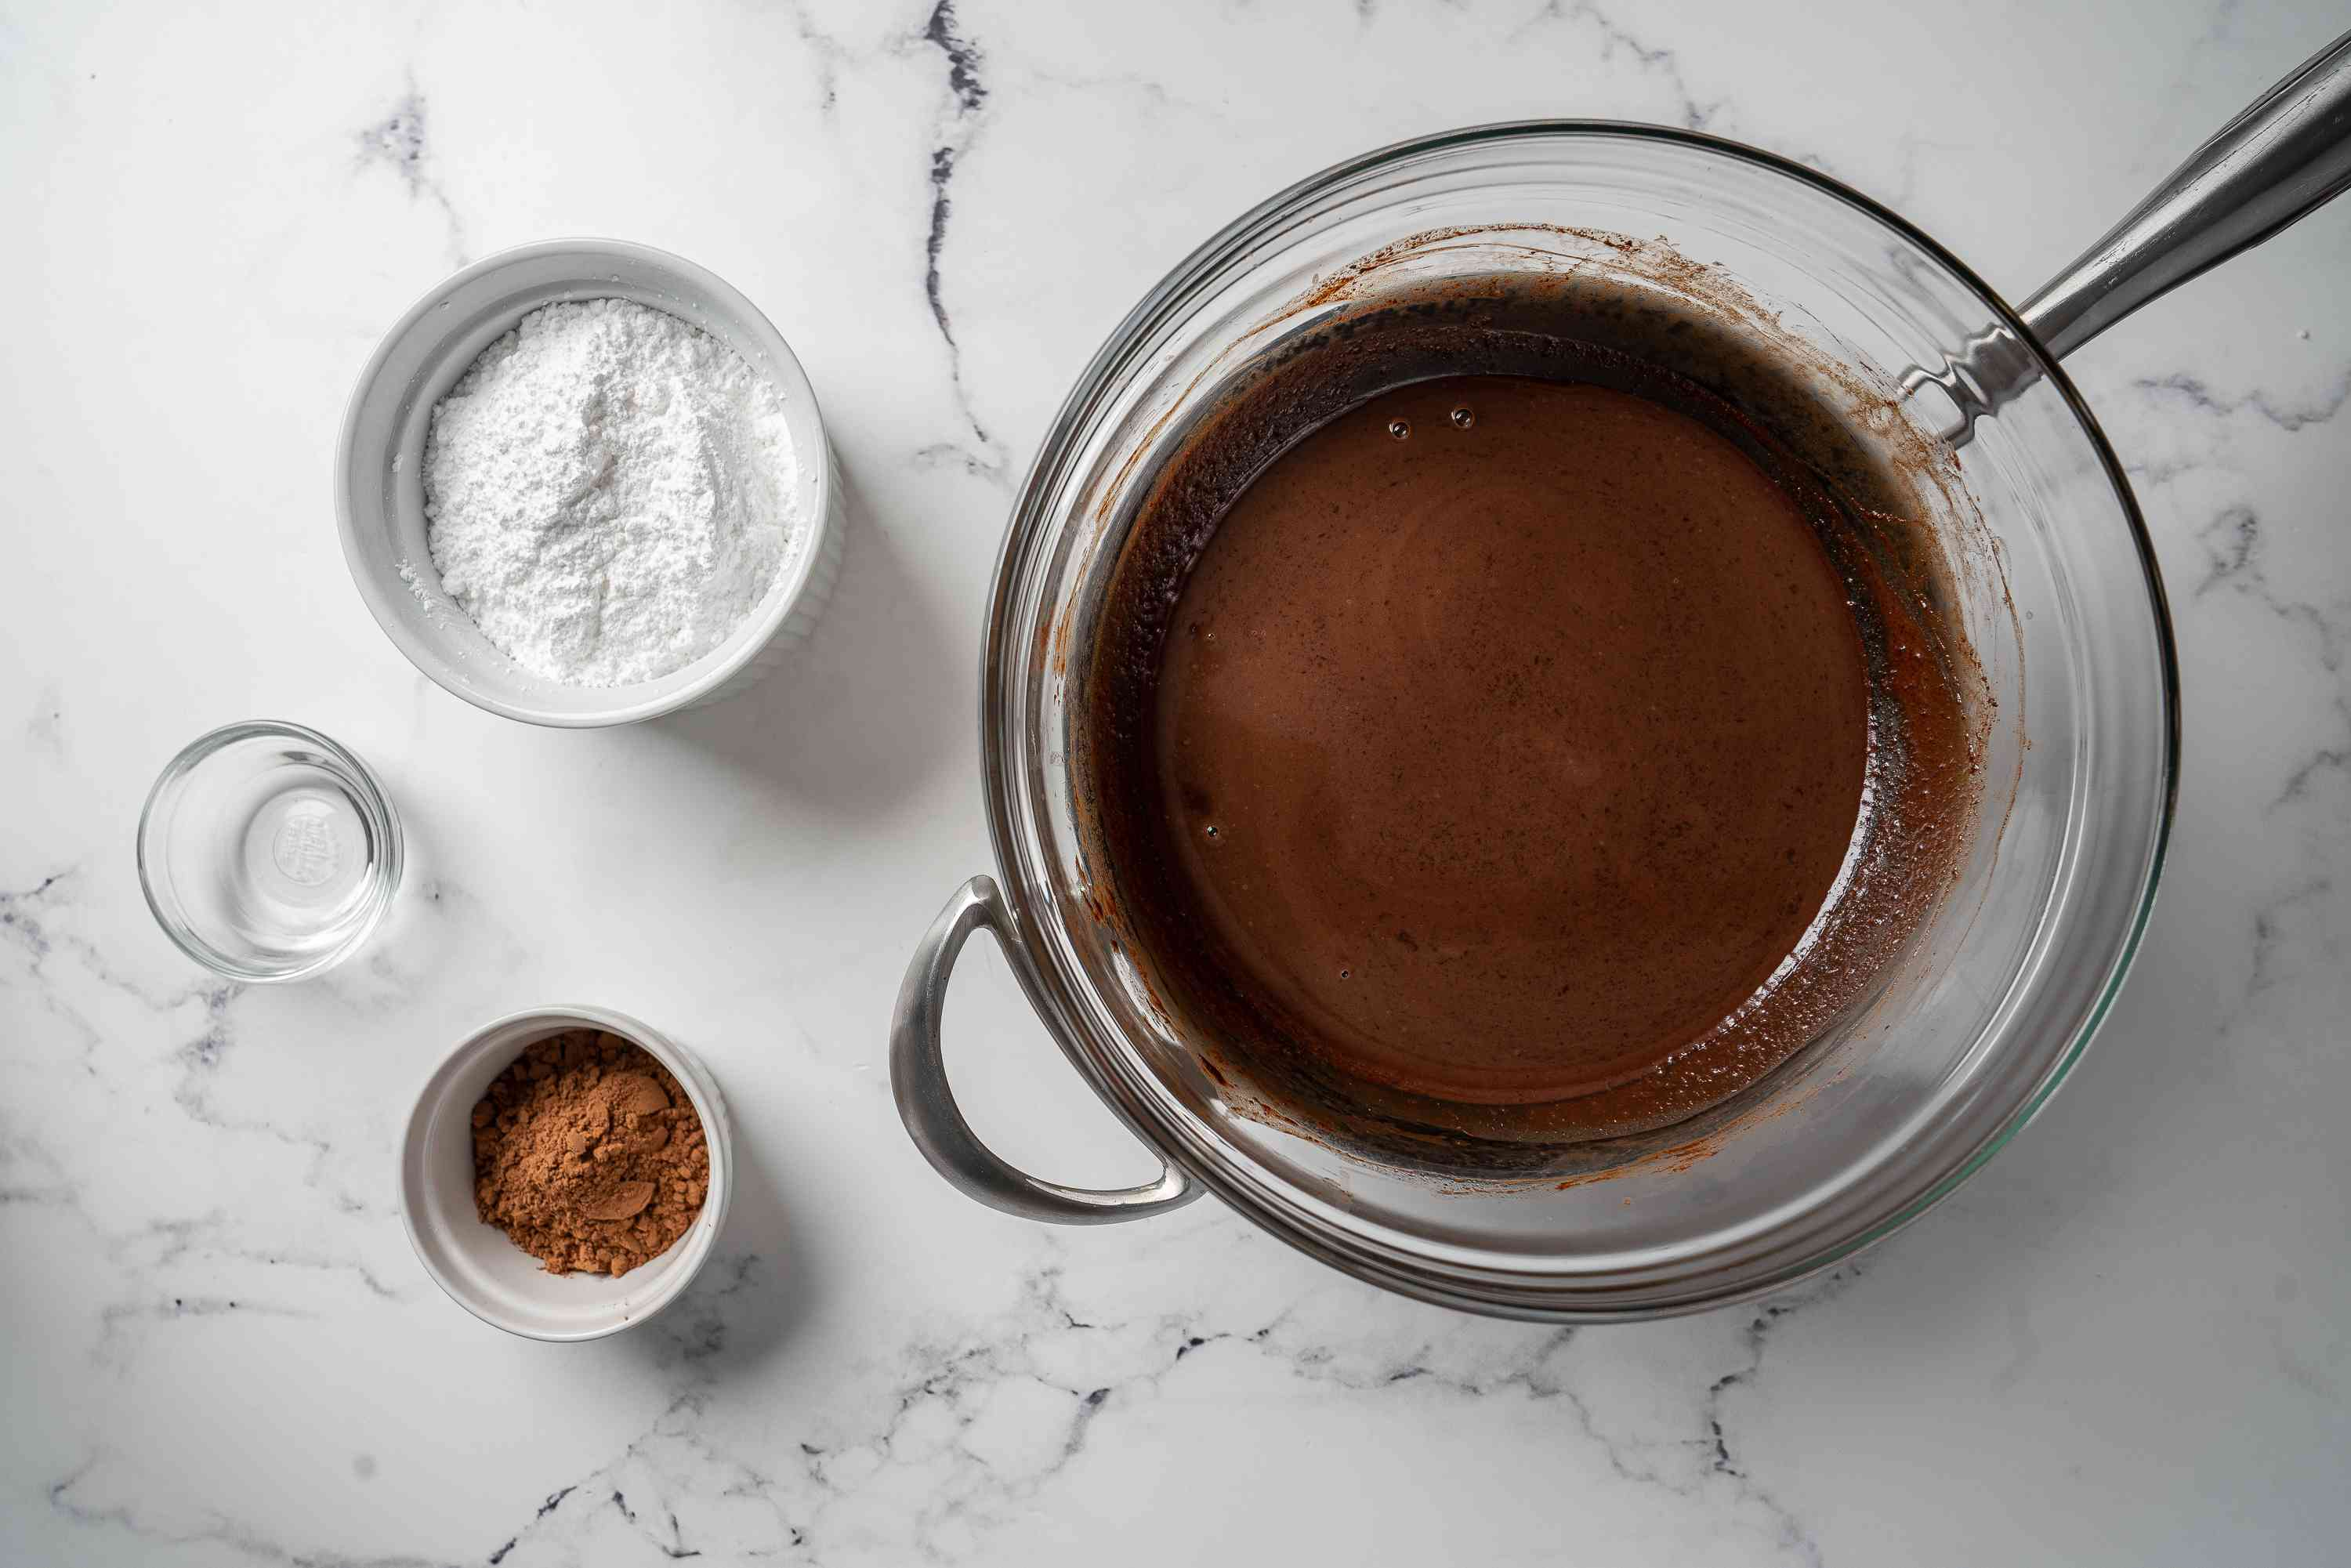 Add powdered sugar and cocoa to melted chocolate mixture